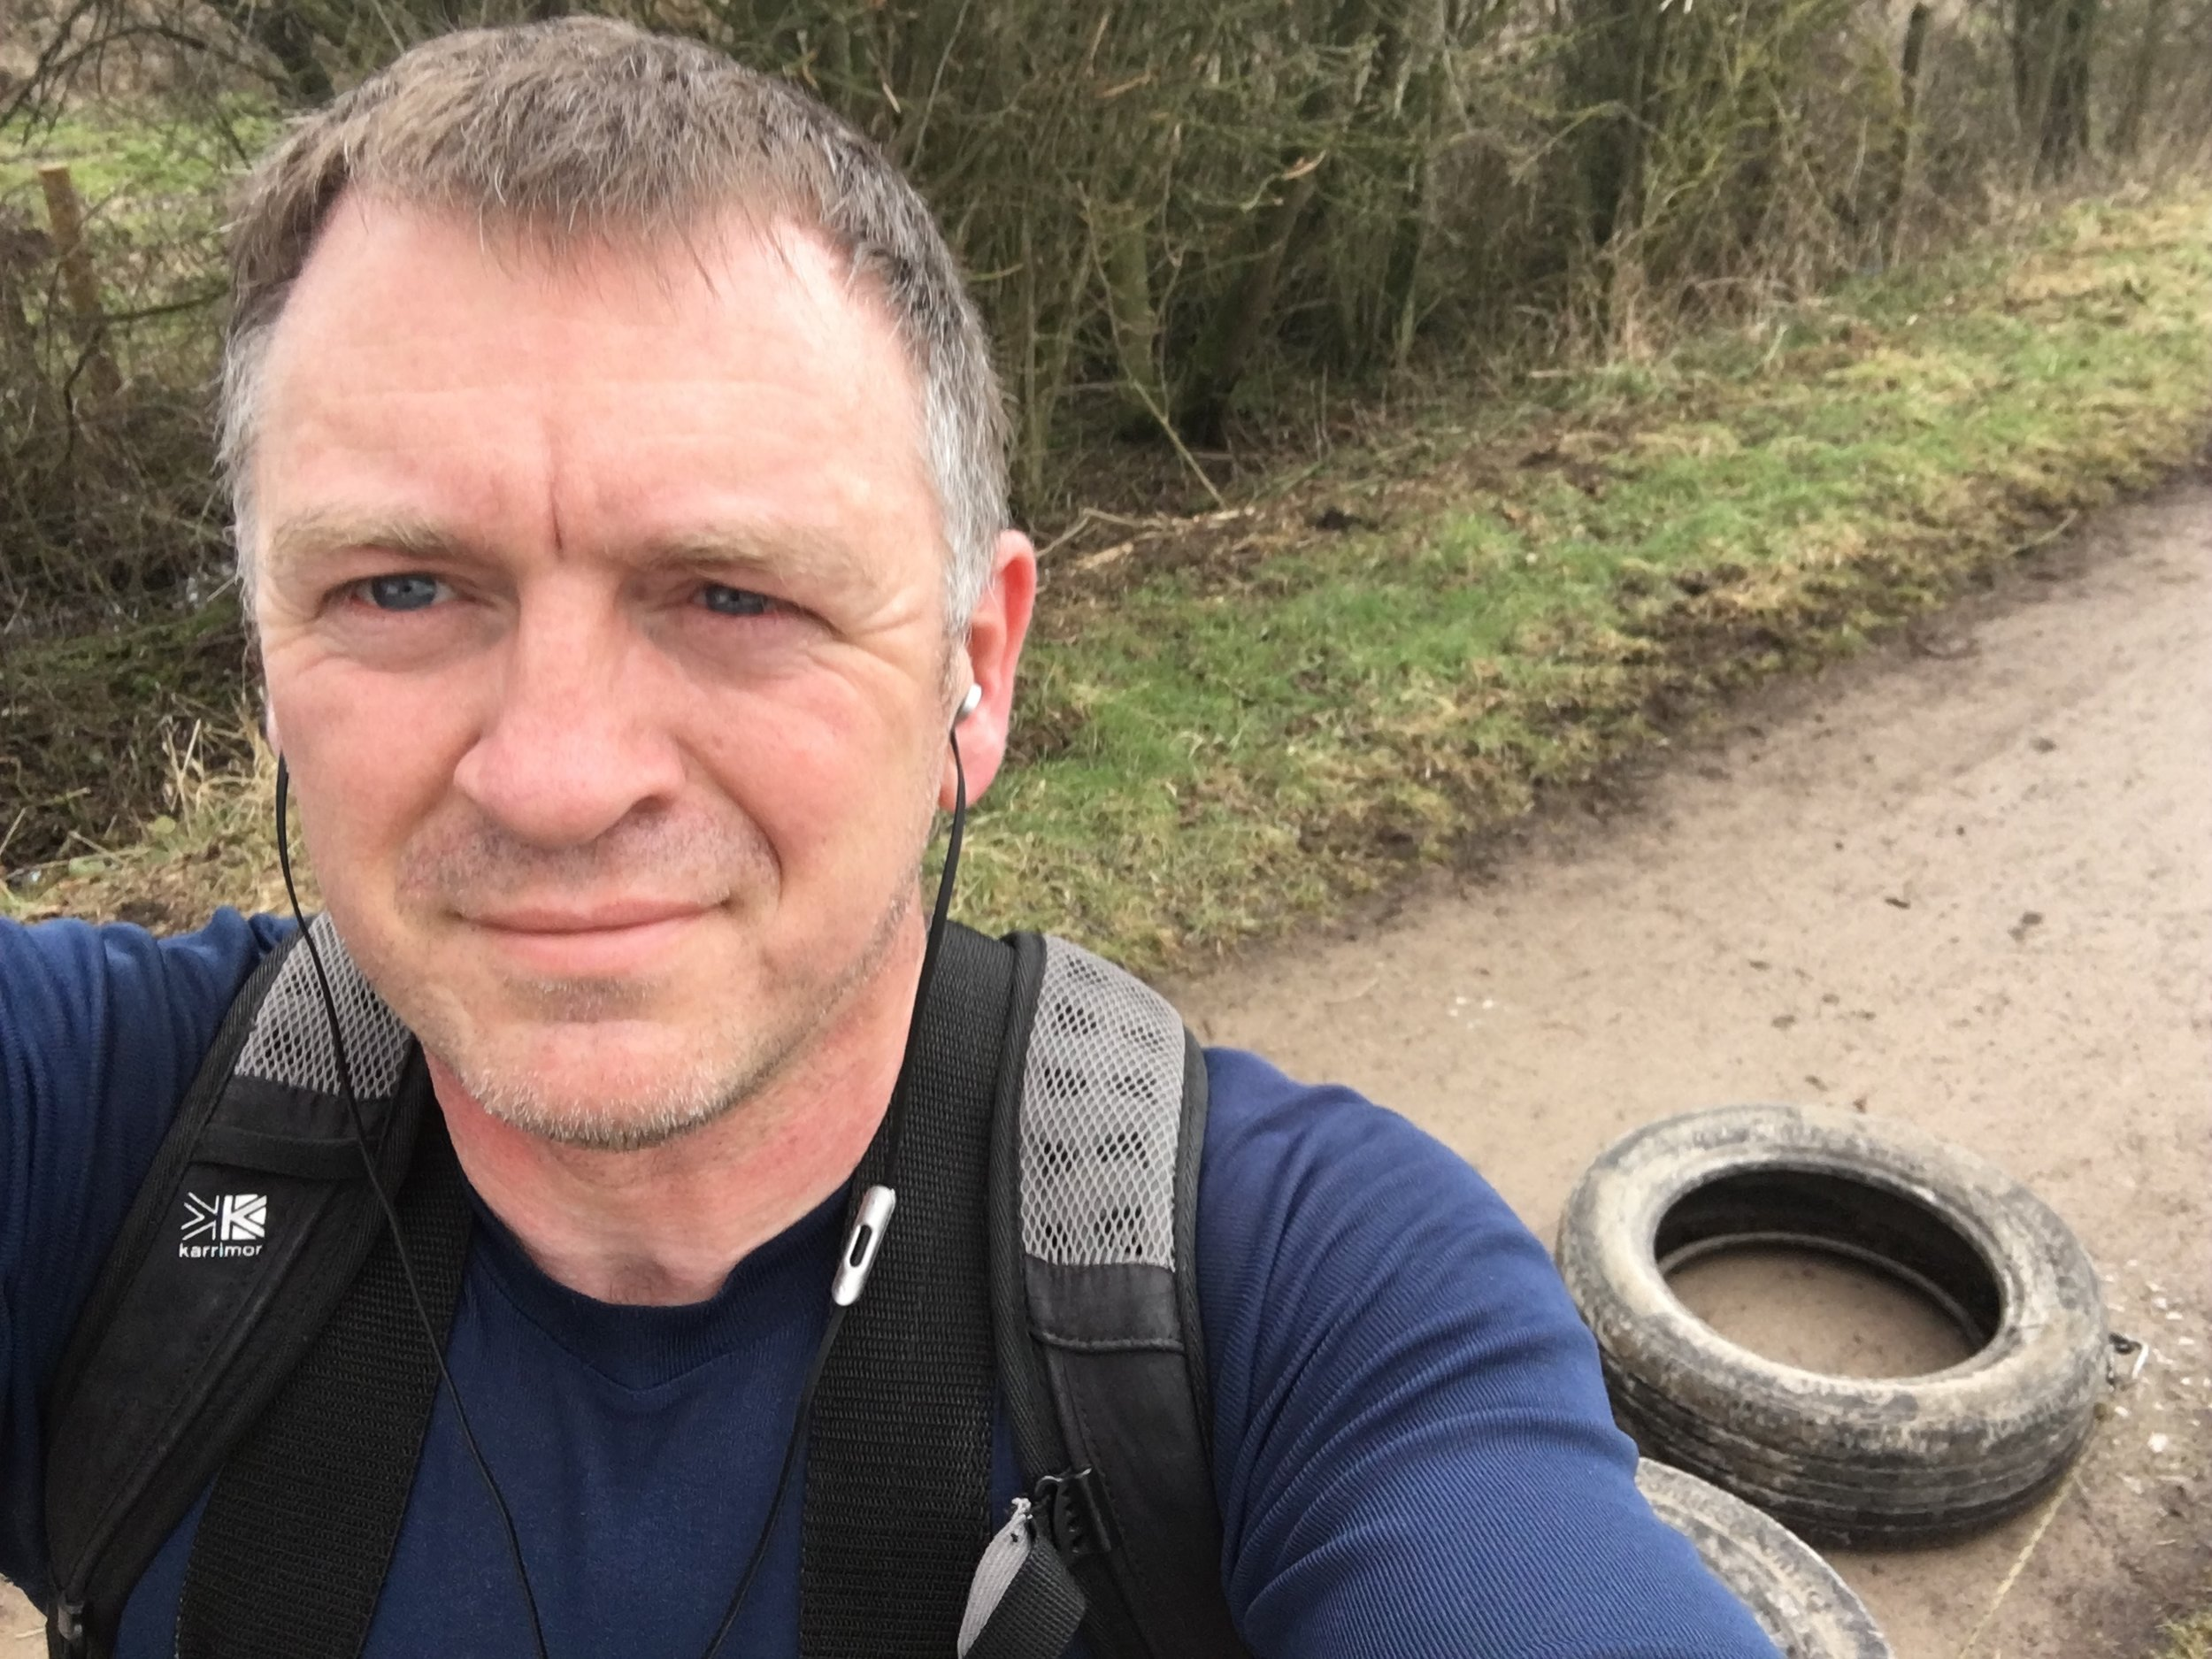 Dragging tyres up and down hills is a great way to become accustomed to working in a harness, but is my least favourite way of getting fit.